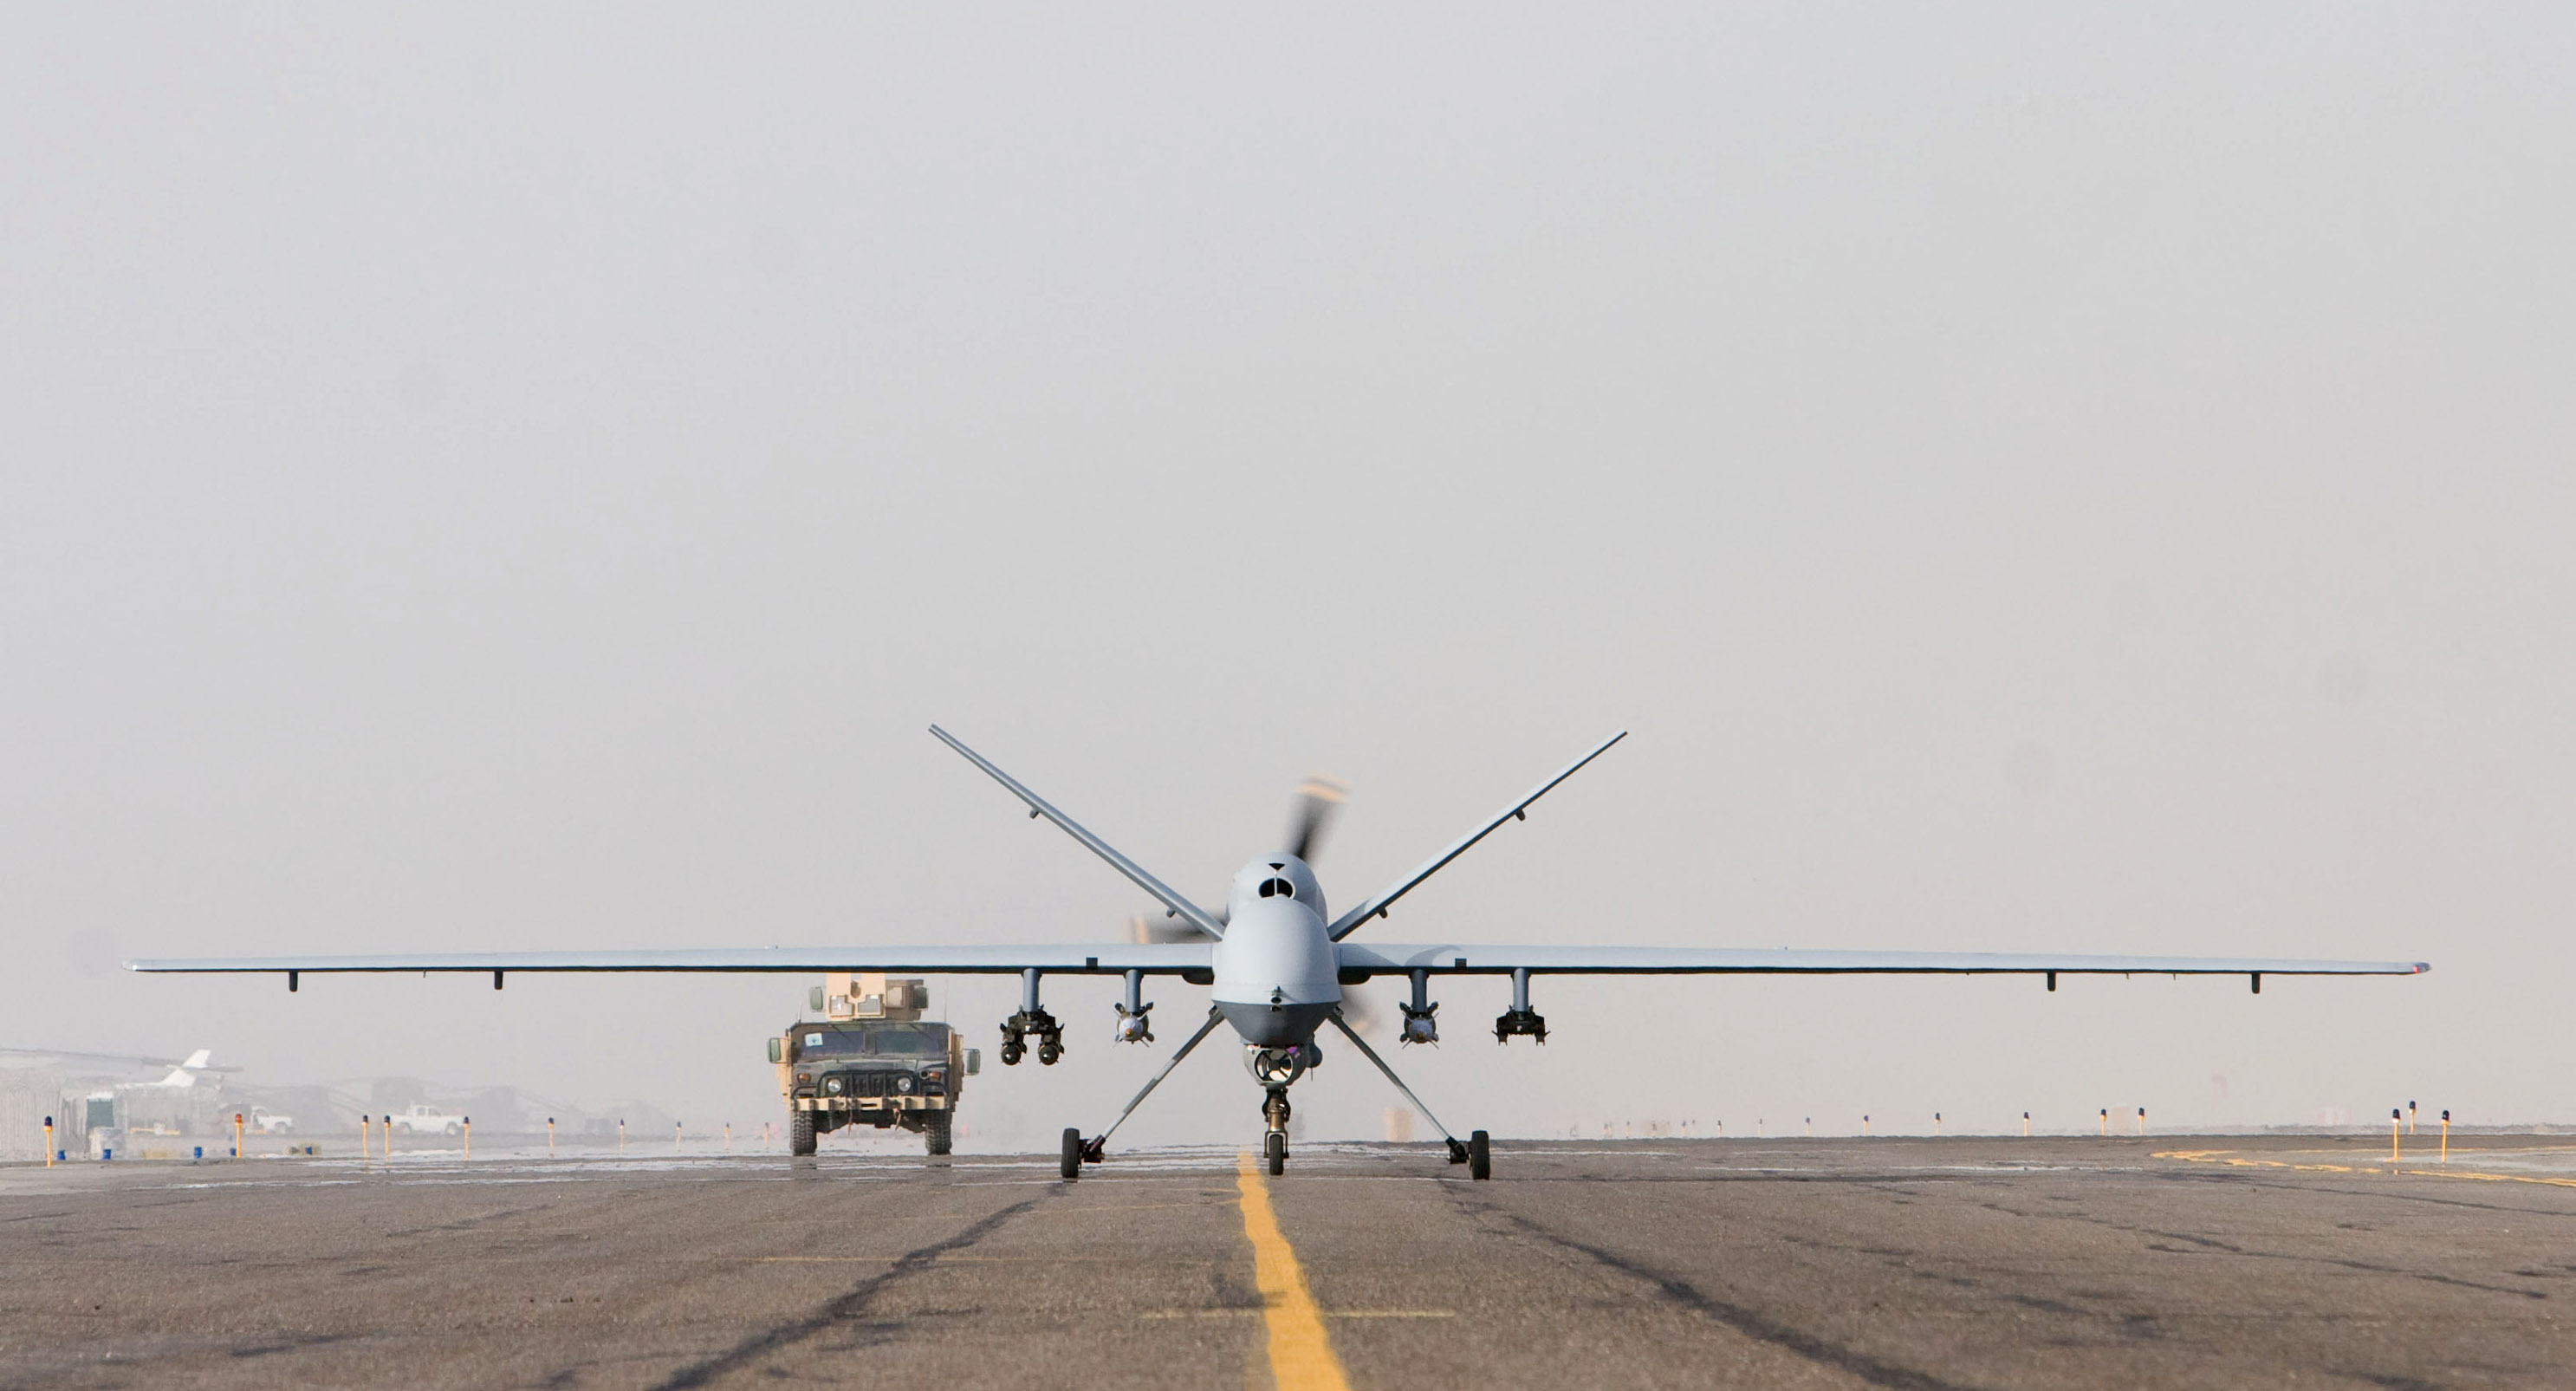 uav reaper drone with File Mq 9 Reaper Taxis   070931 M 5827m 020 on Genesis Of Predator Uav moreover File Reaper RPAS Aircraft Lands at Kandahar  Afghanistan MOD 45154678 additionally Watch further Focus Deel 1 Hoe Drones Het Midden Oosten Veroveren moreover Hizballah Drone With Iranian Backing Shot Down Over Israel.